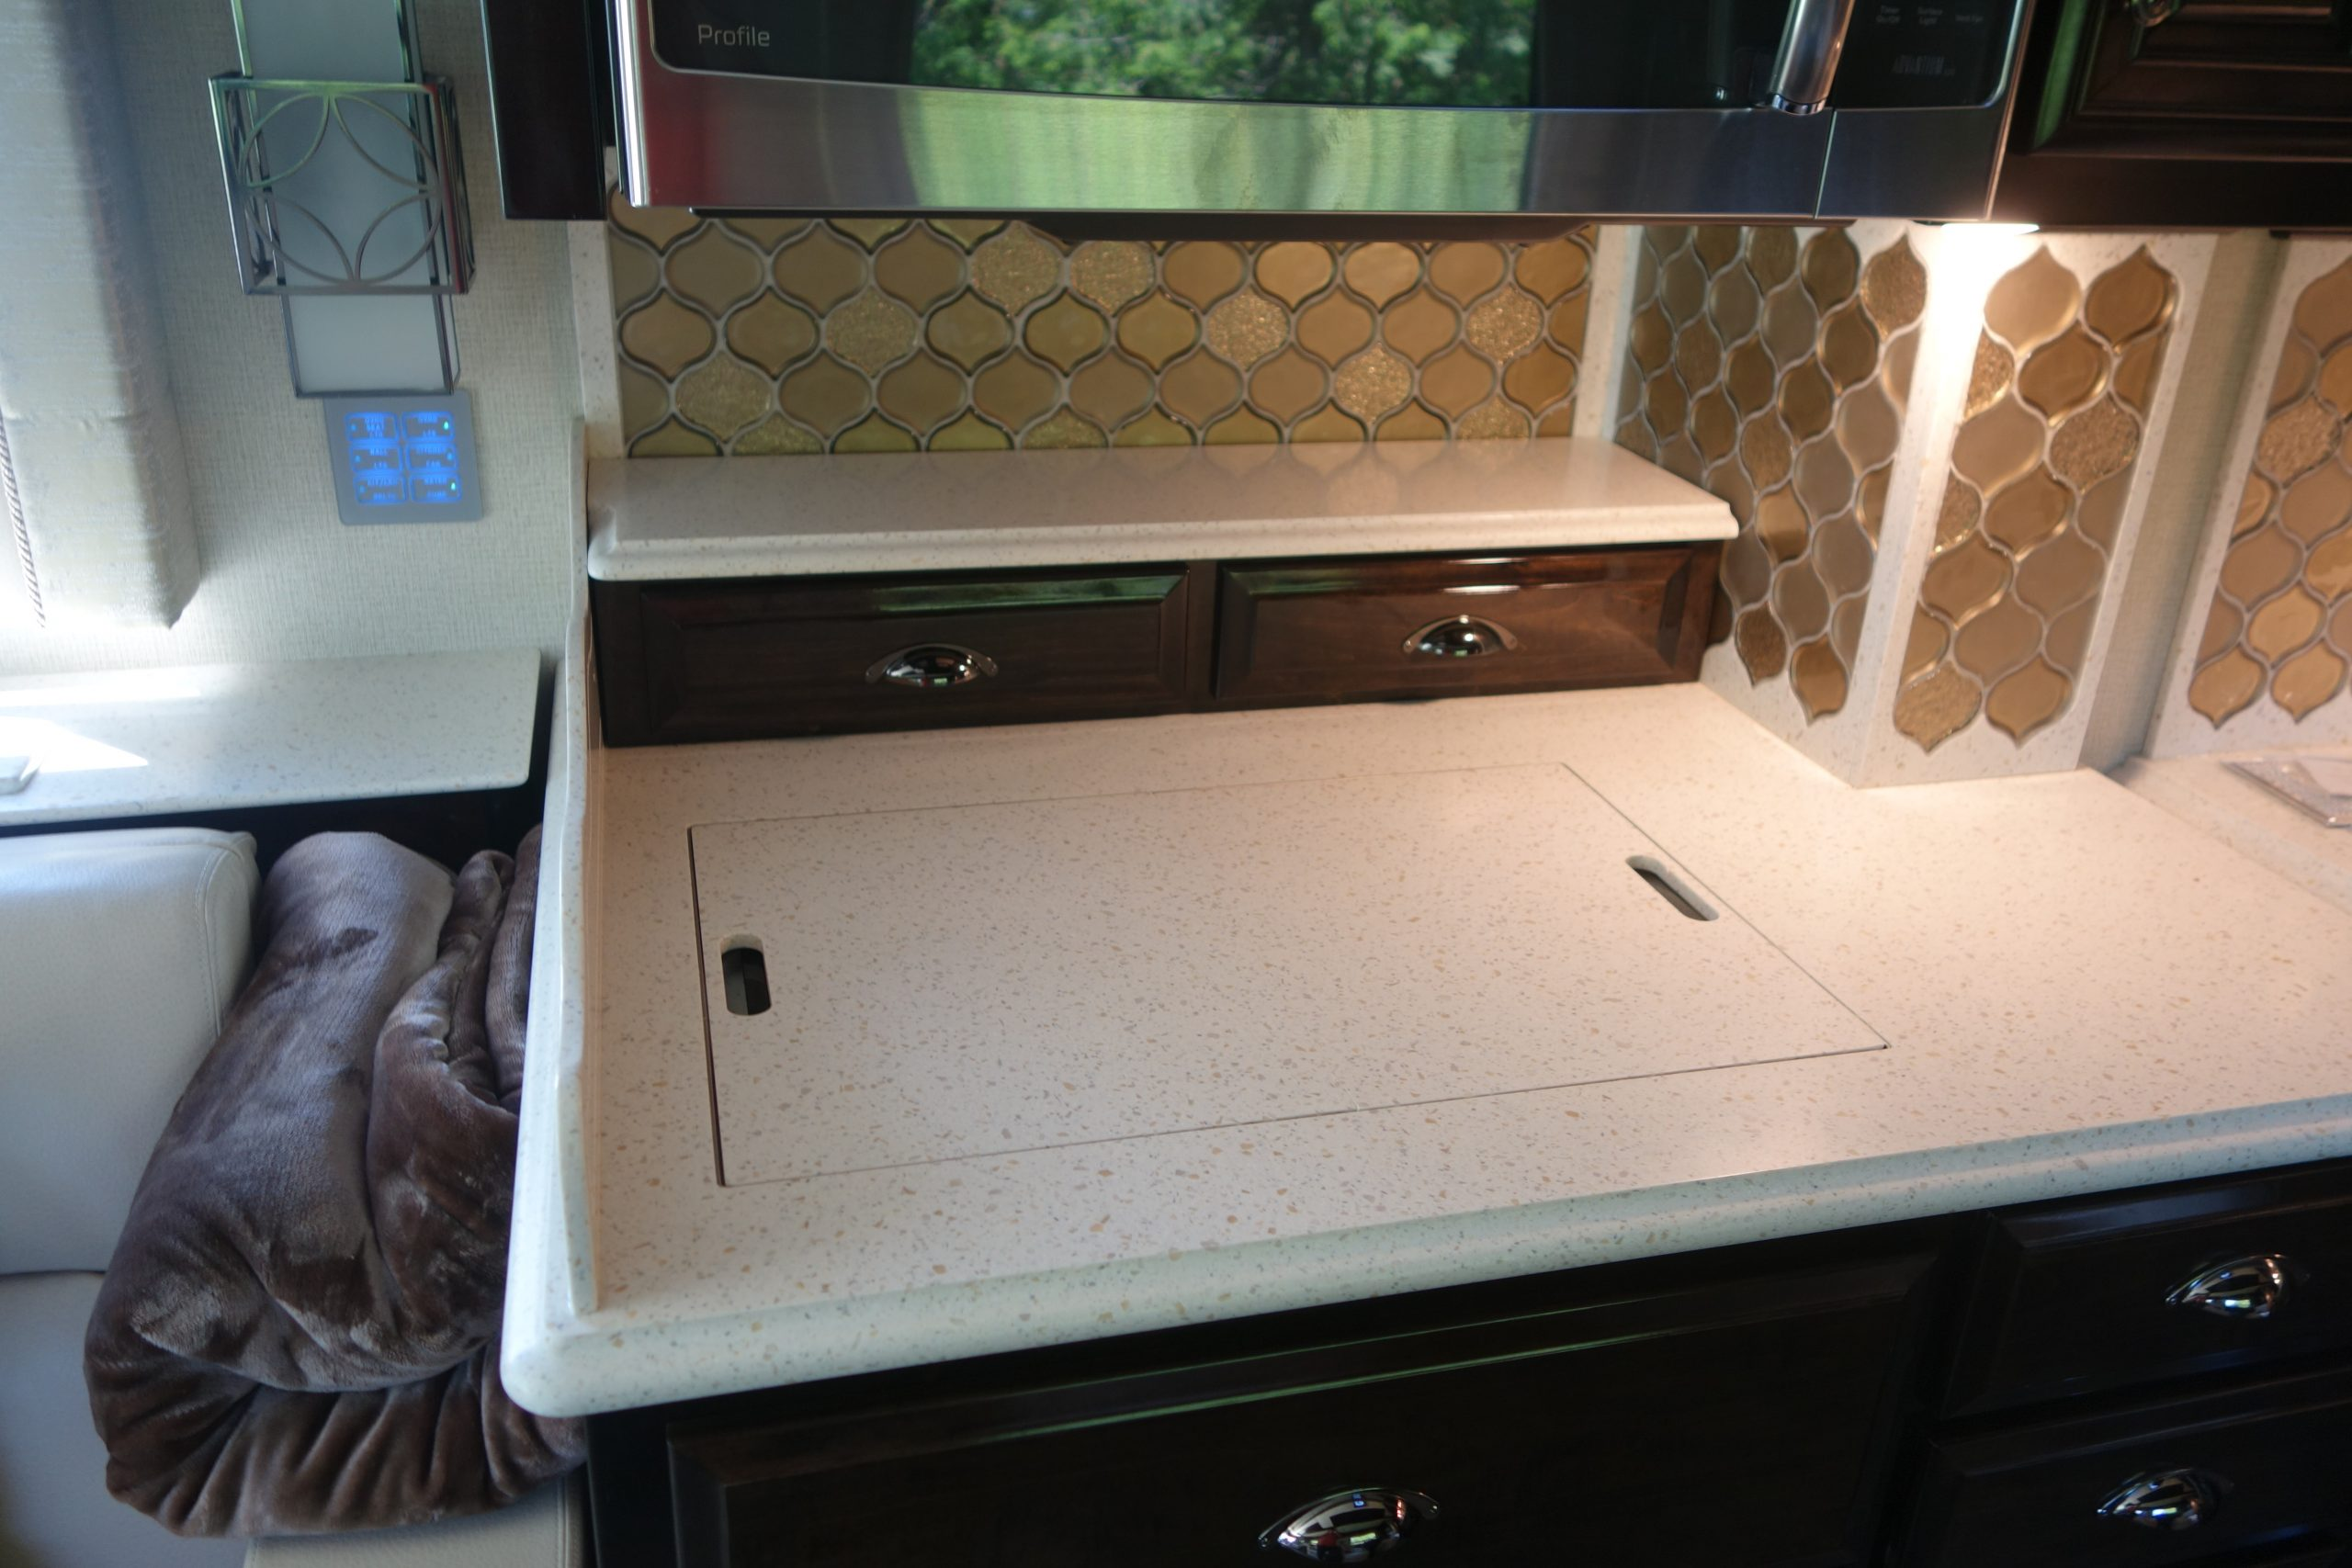 Countertop drawers